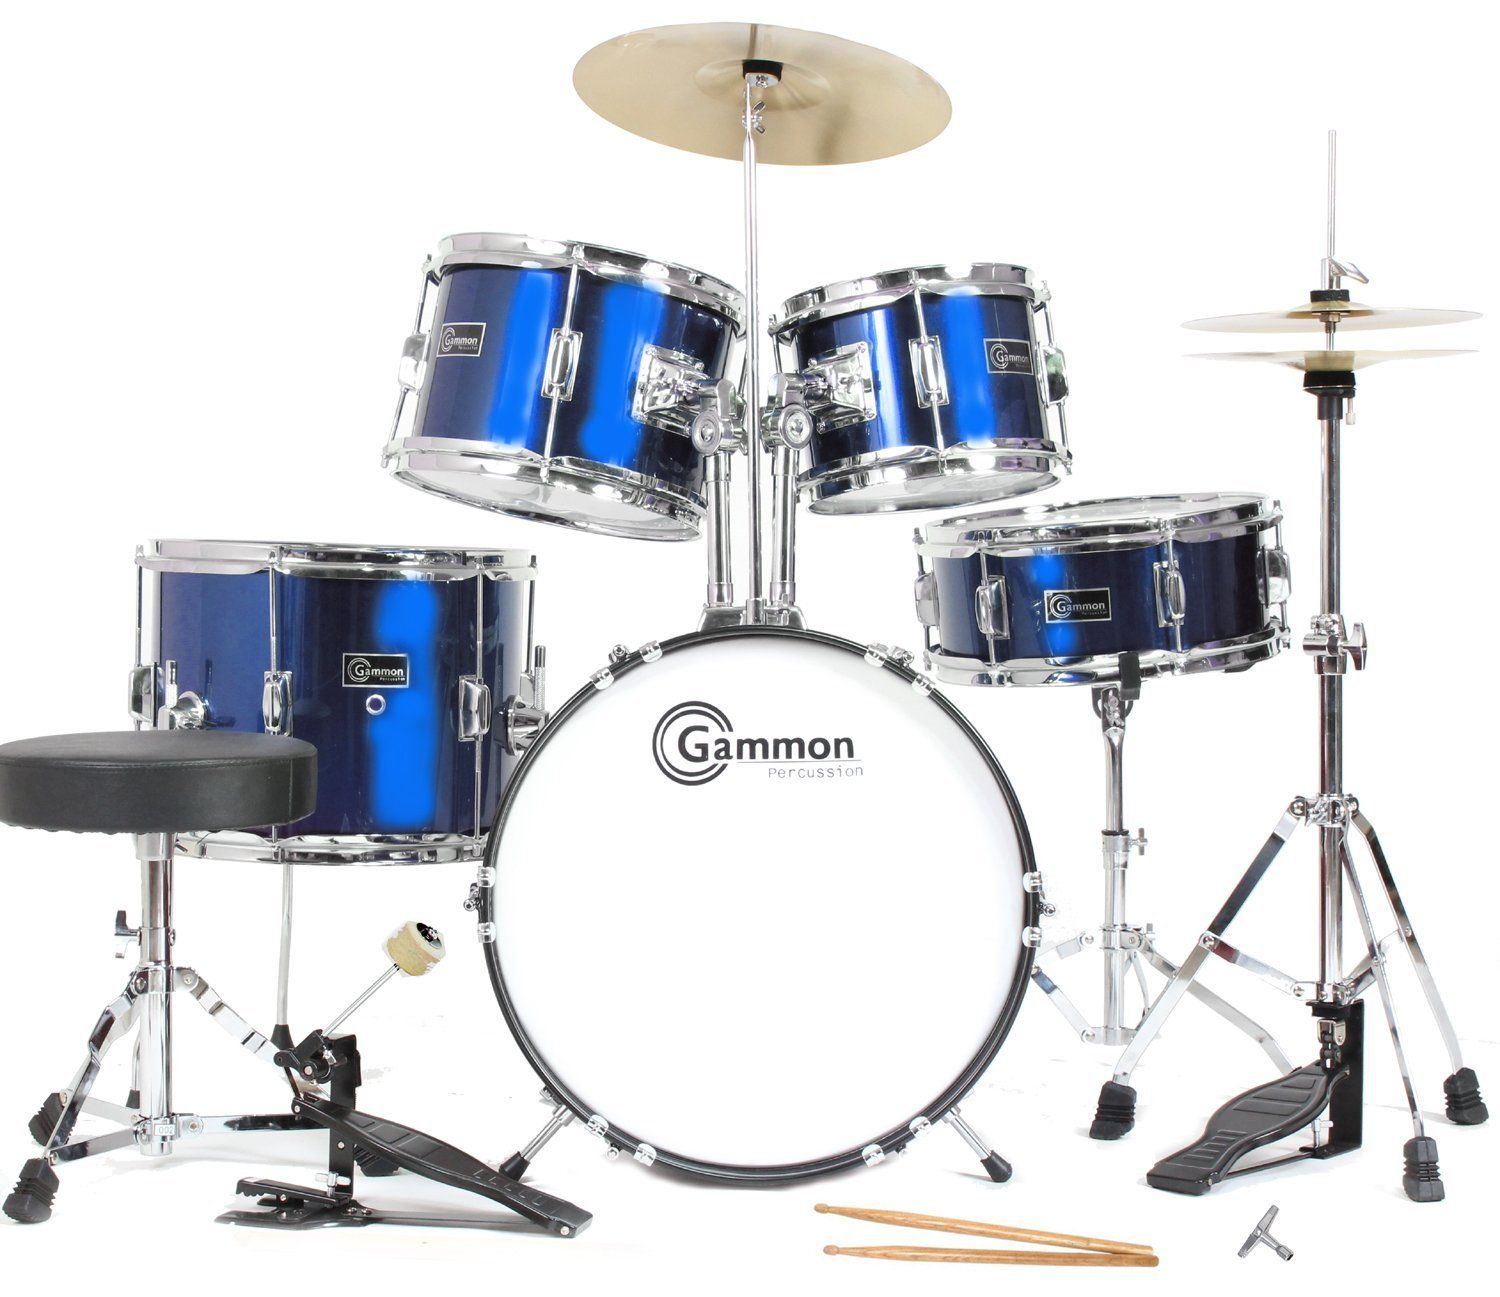 Buy Gammon Junior Starter Drum Set Metallic Blue Childrens Kid Size Kit With Cymbals Stands Sticks Throne Brand New Sale Absolutely